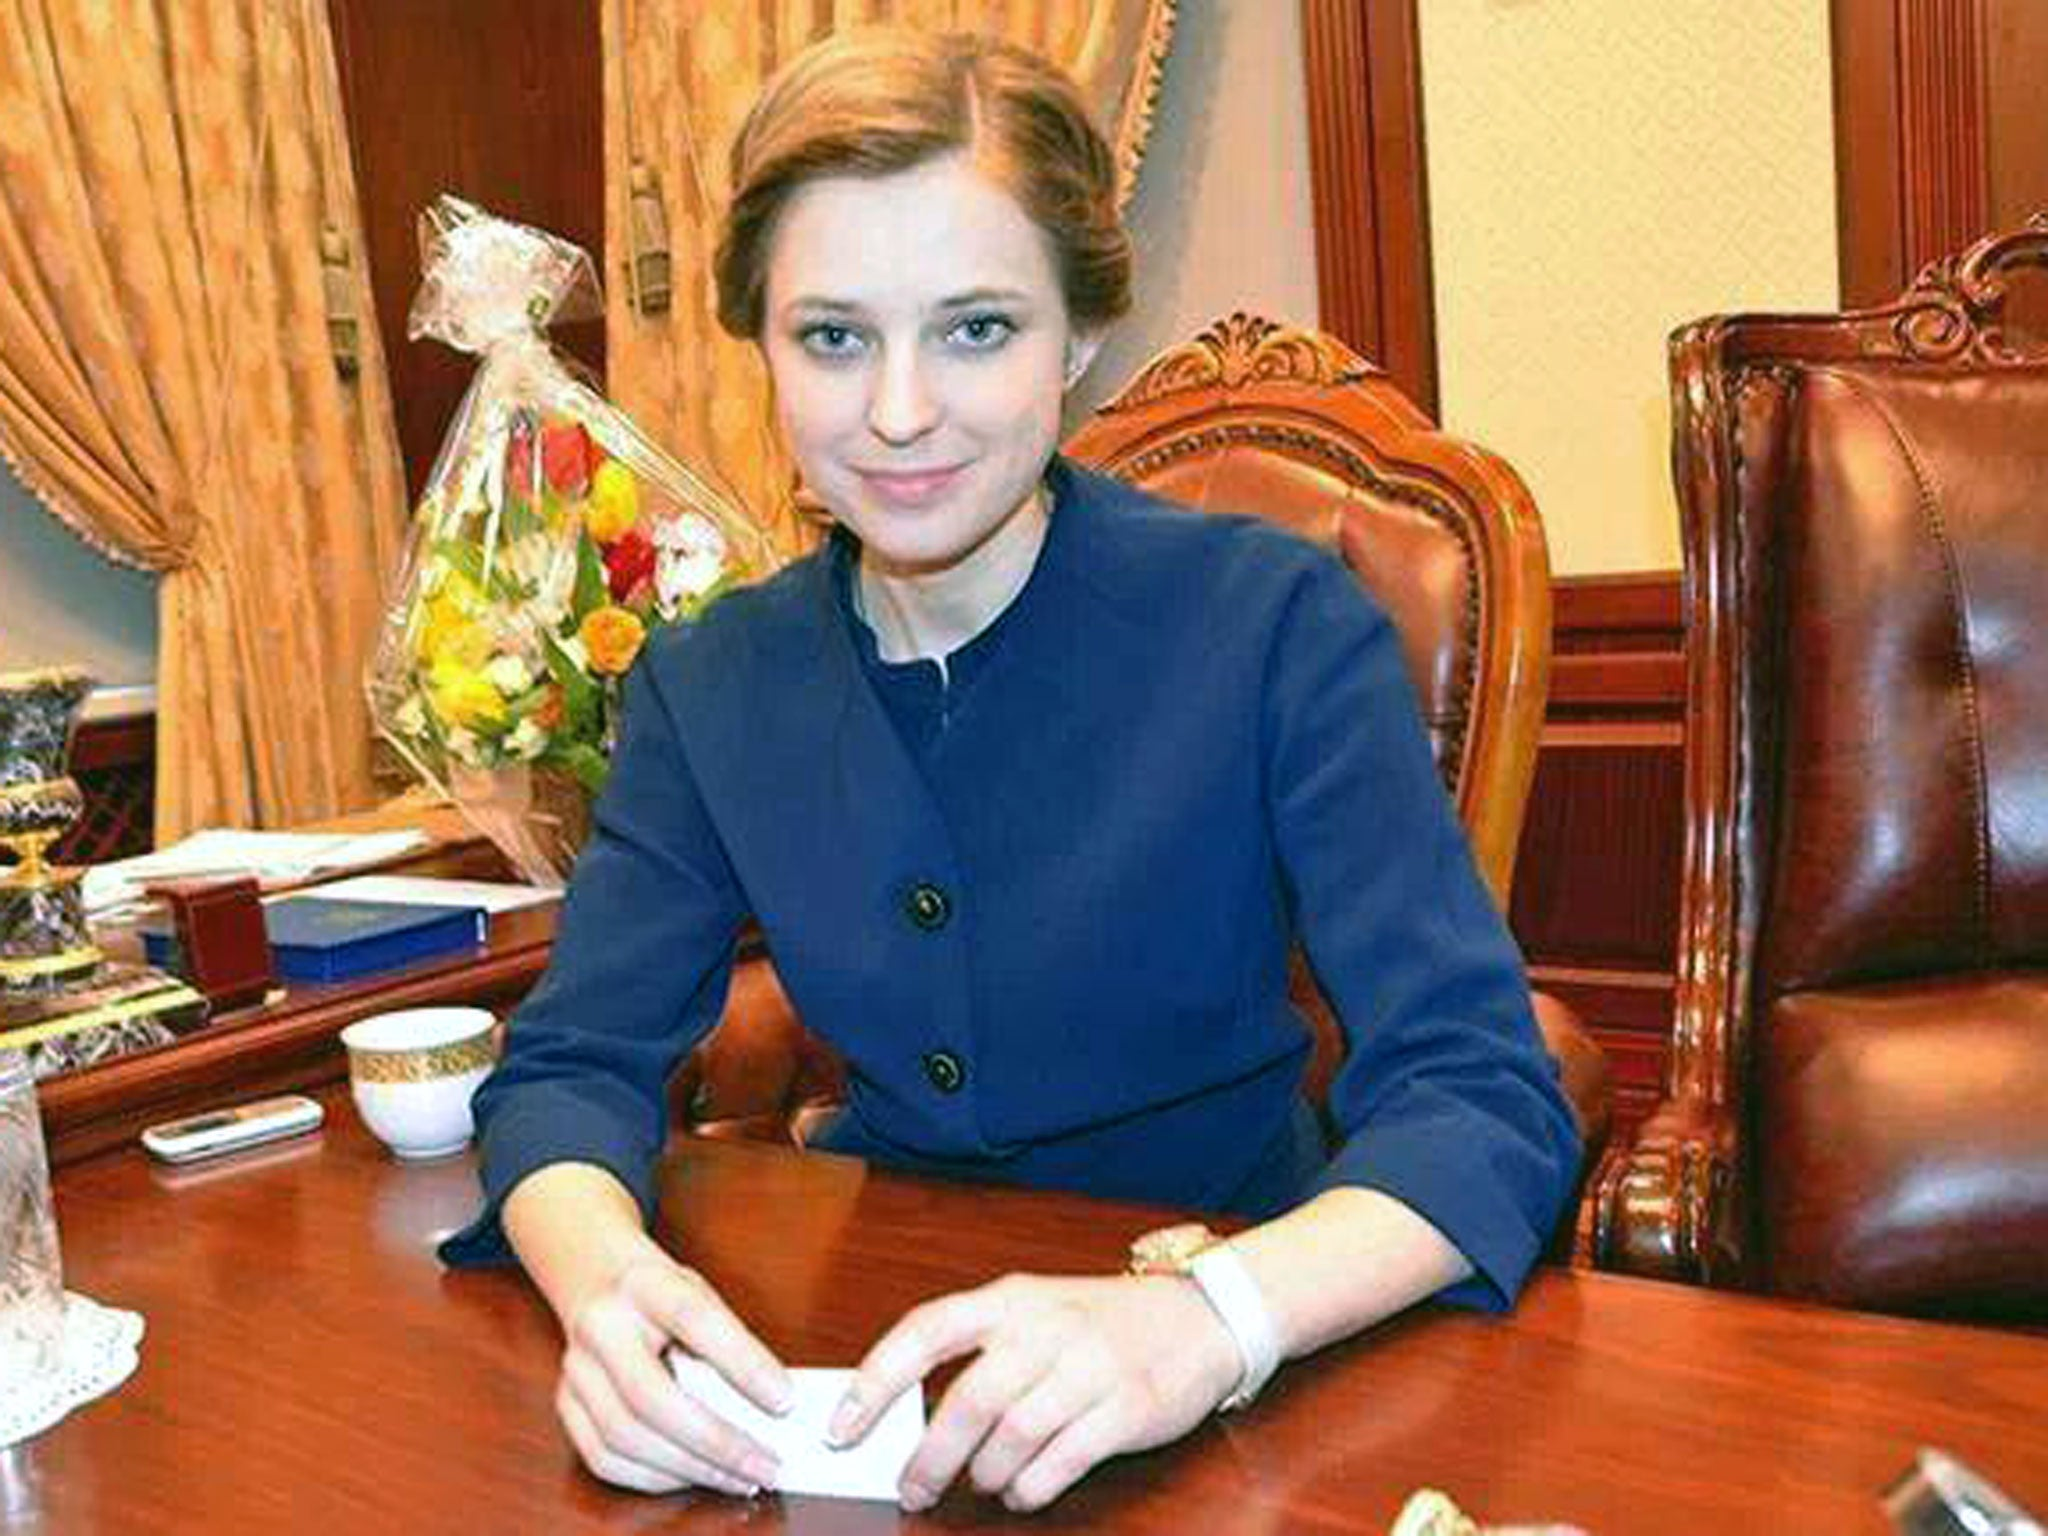 Natalya Poklonskaya can become a competitor of Irina Yarovaya 05.08.2015 12